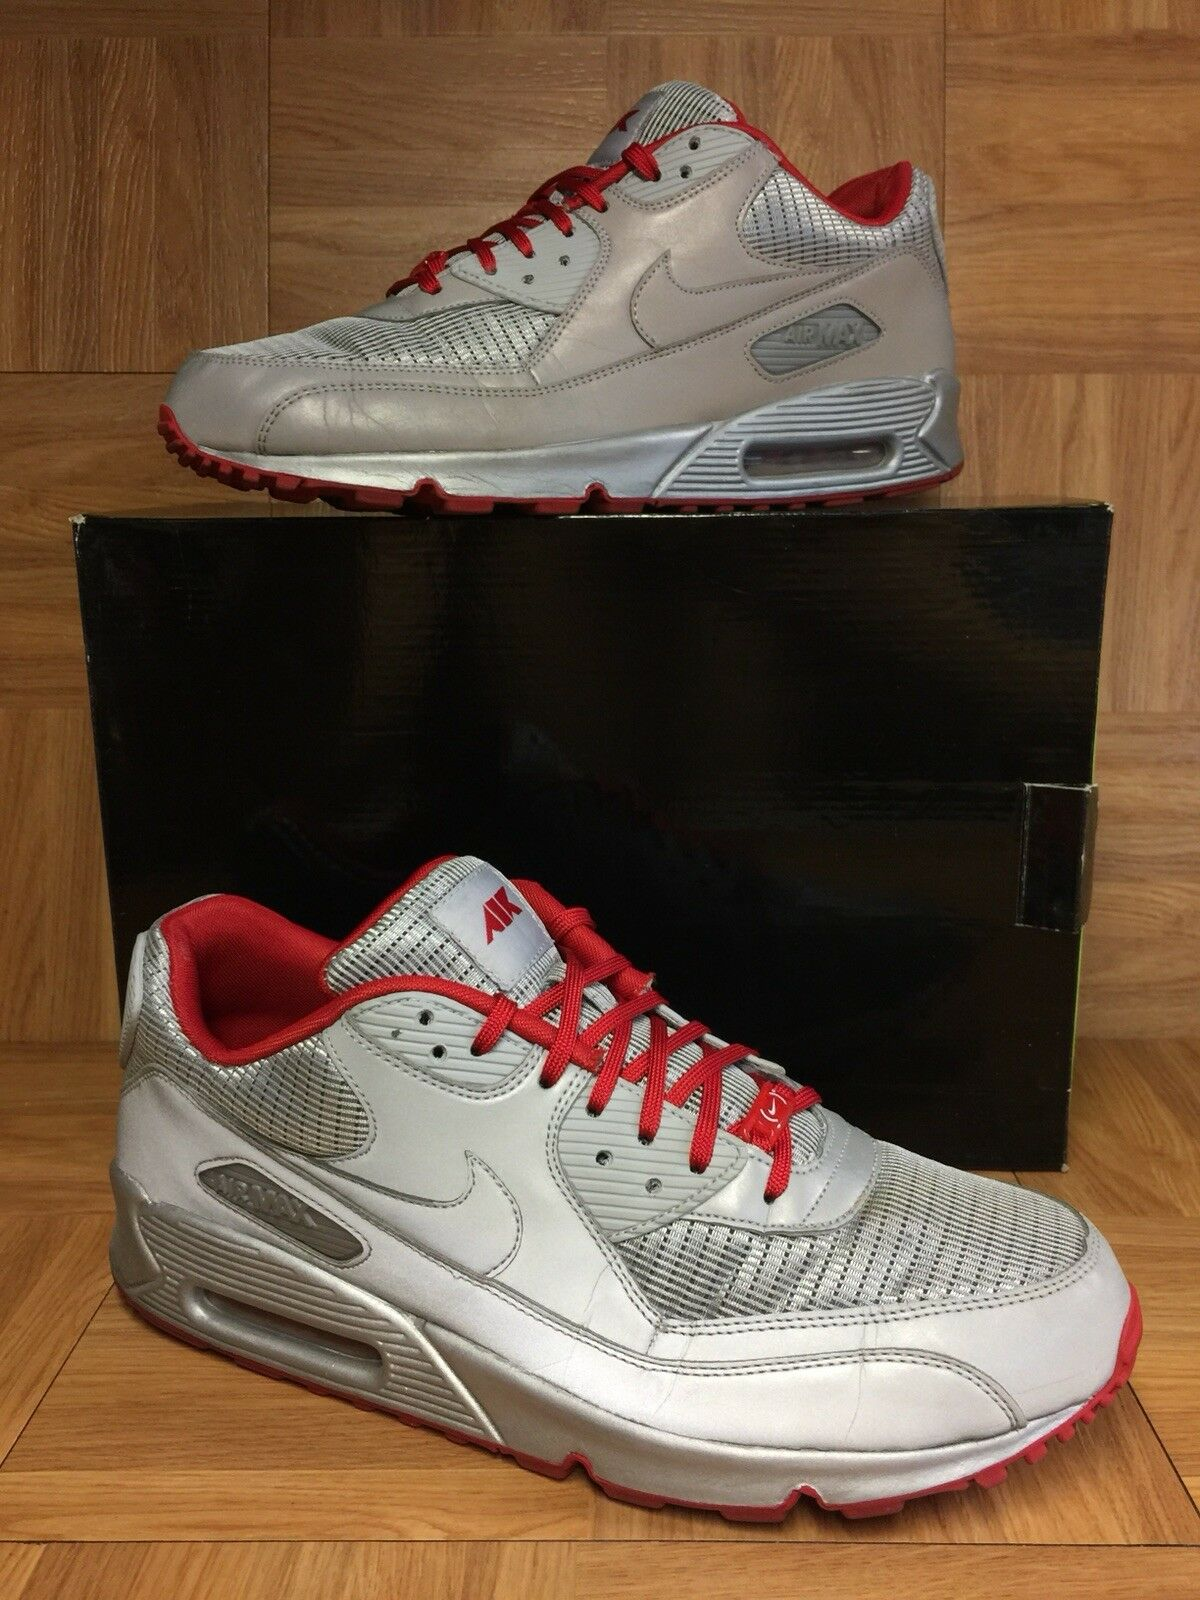 sale retailer faa6a ccf1f ... promo code for rari nike air max 90 argento sz metallico rosso attacco  pack sz argento